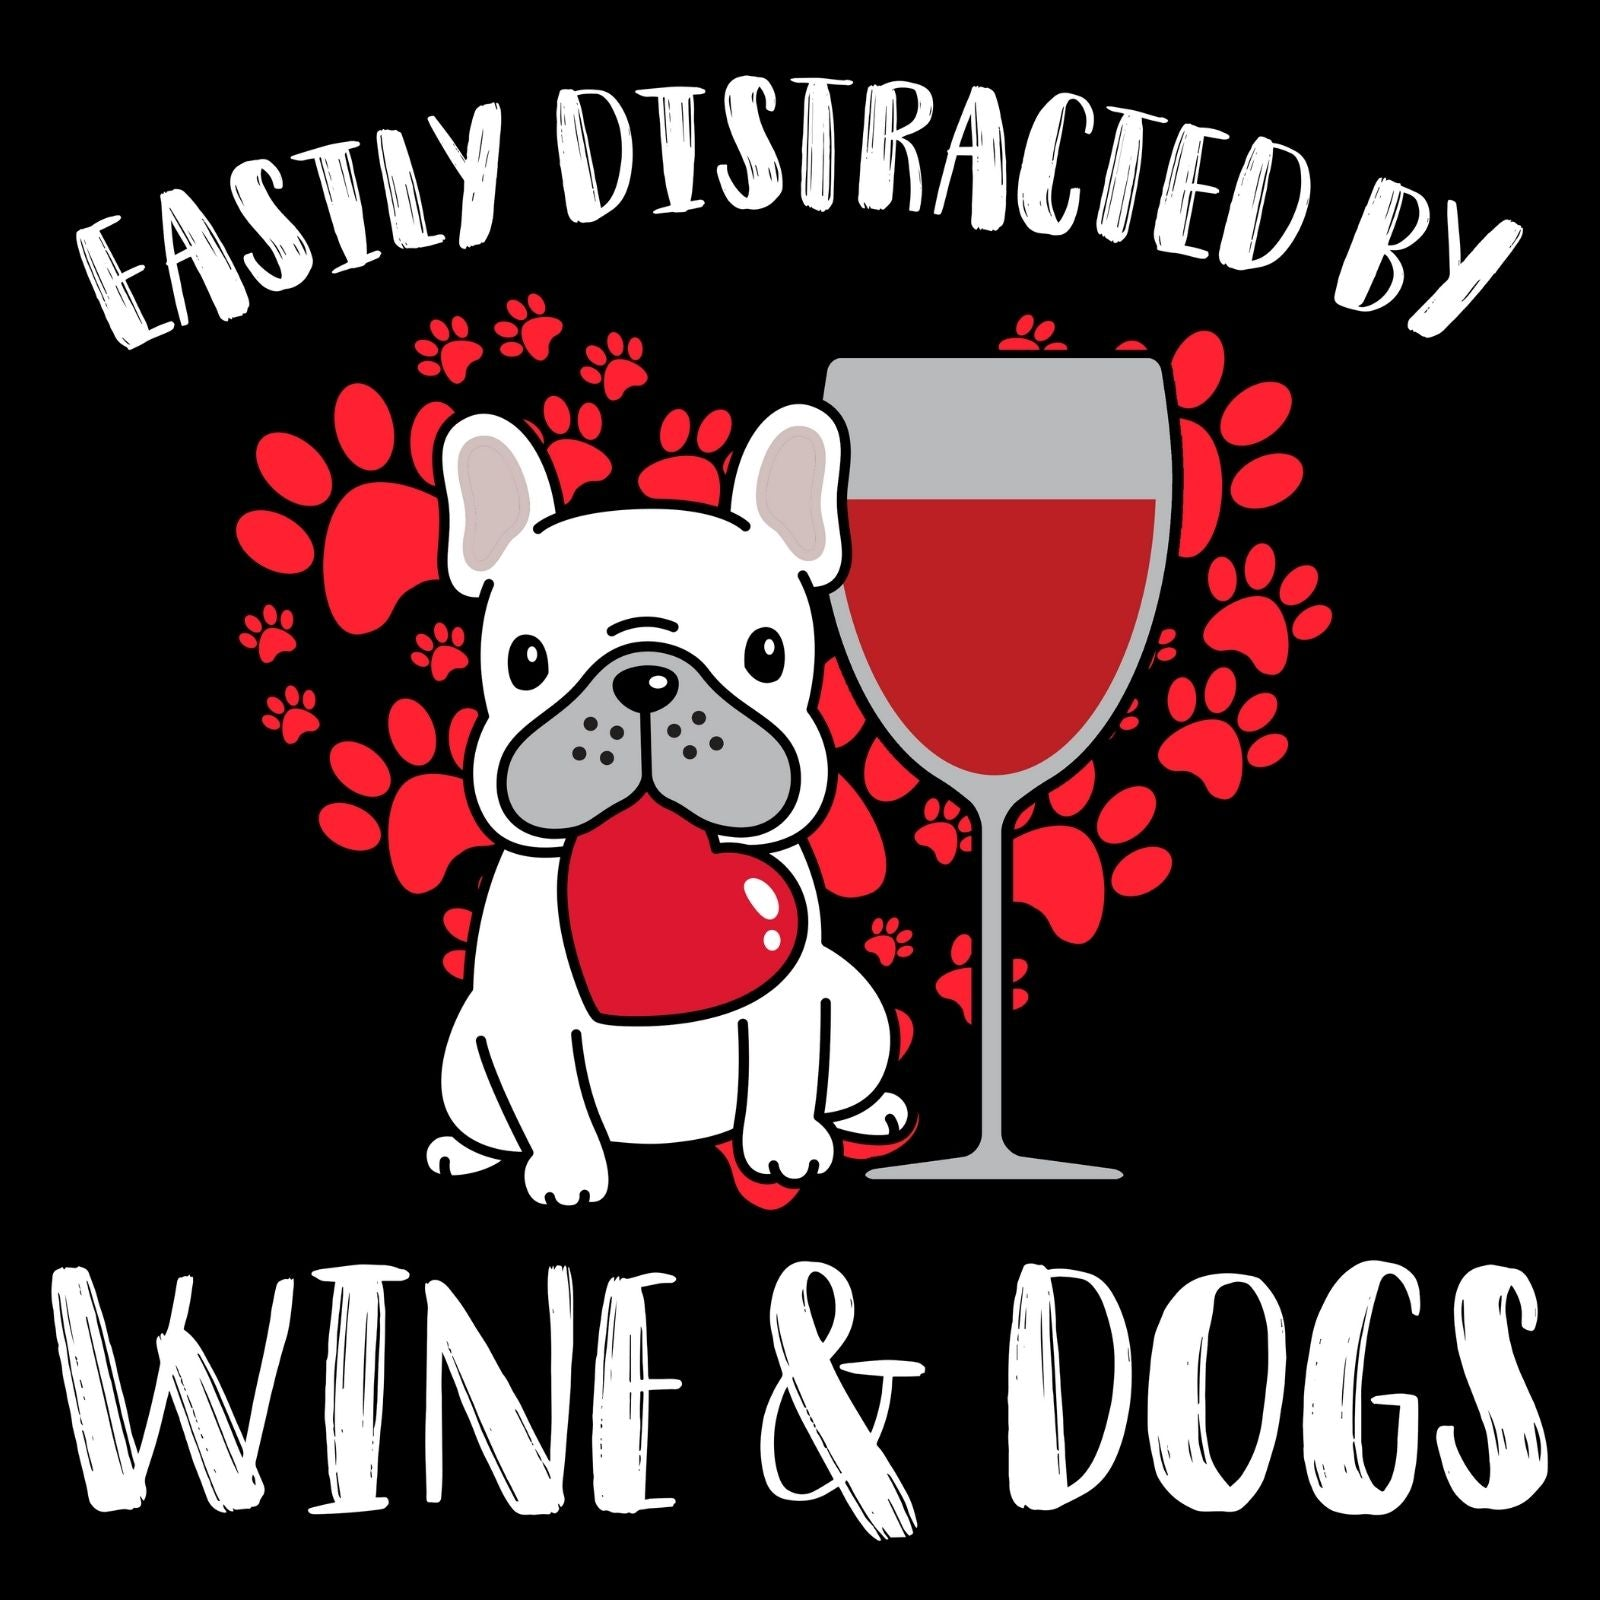 Easily Distracted By Wine & Dogs - Bastard Graphics